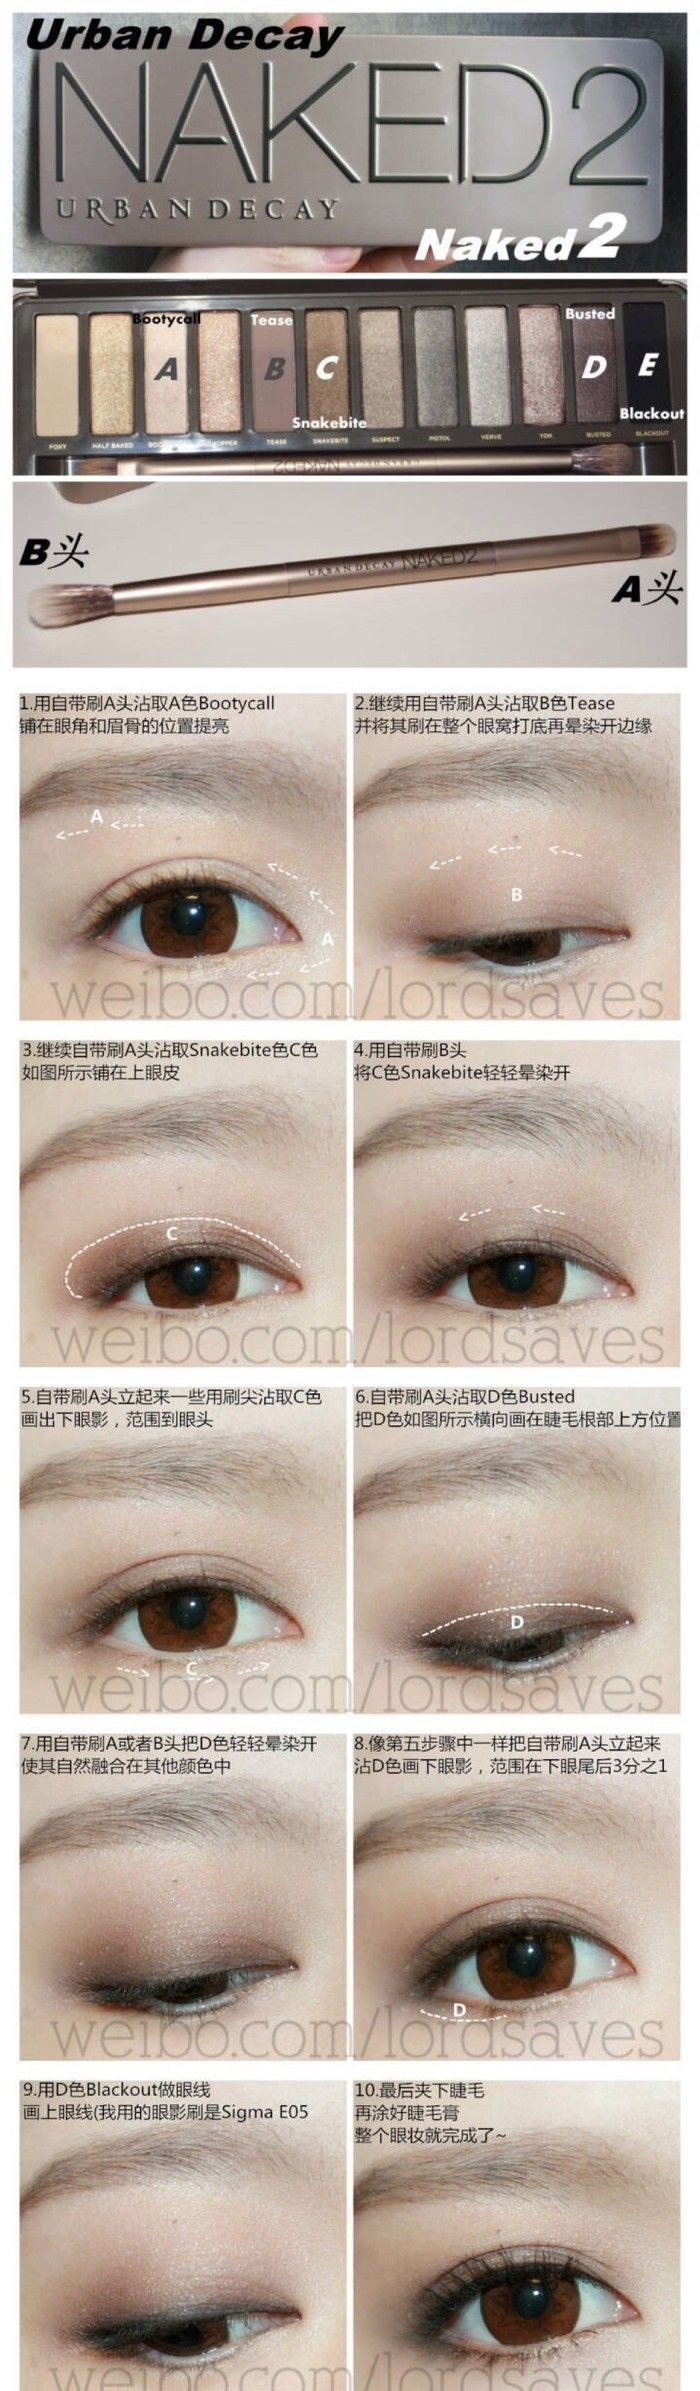 6555e527f7f42d92ec400b41ff28a5beg 7002391 pixels make up urban decay naked 2 palette ulzzang asian korean style makeup tutorial baditri Choice Image